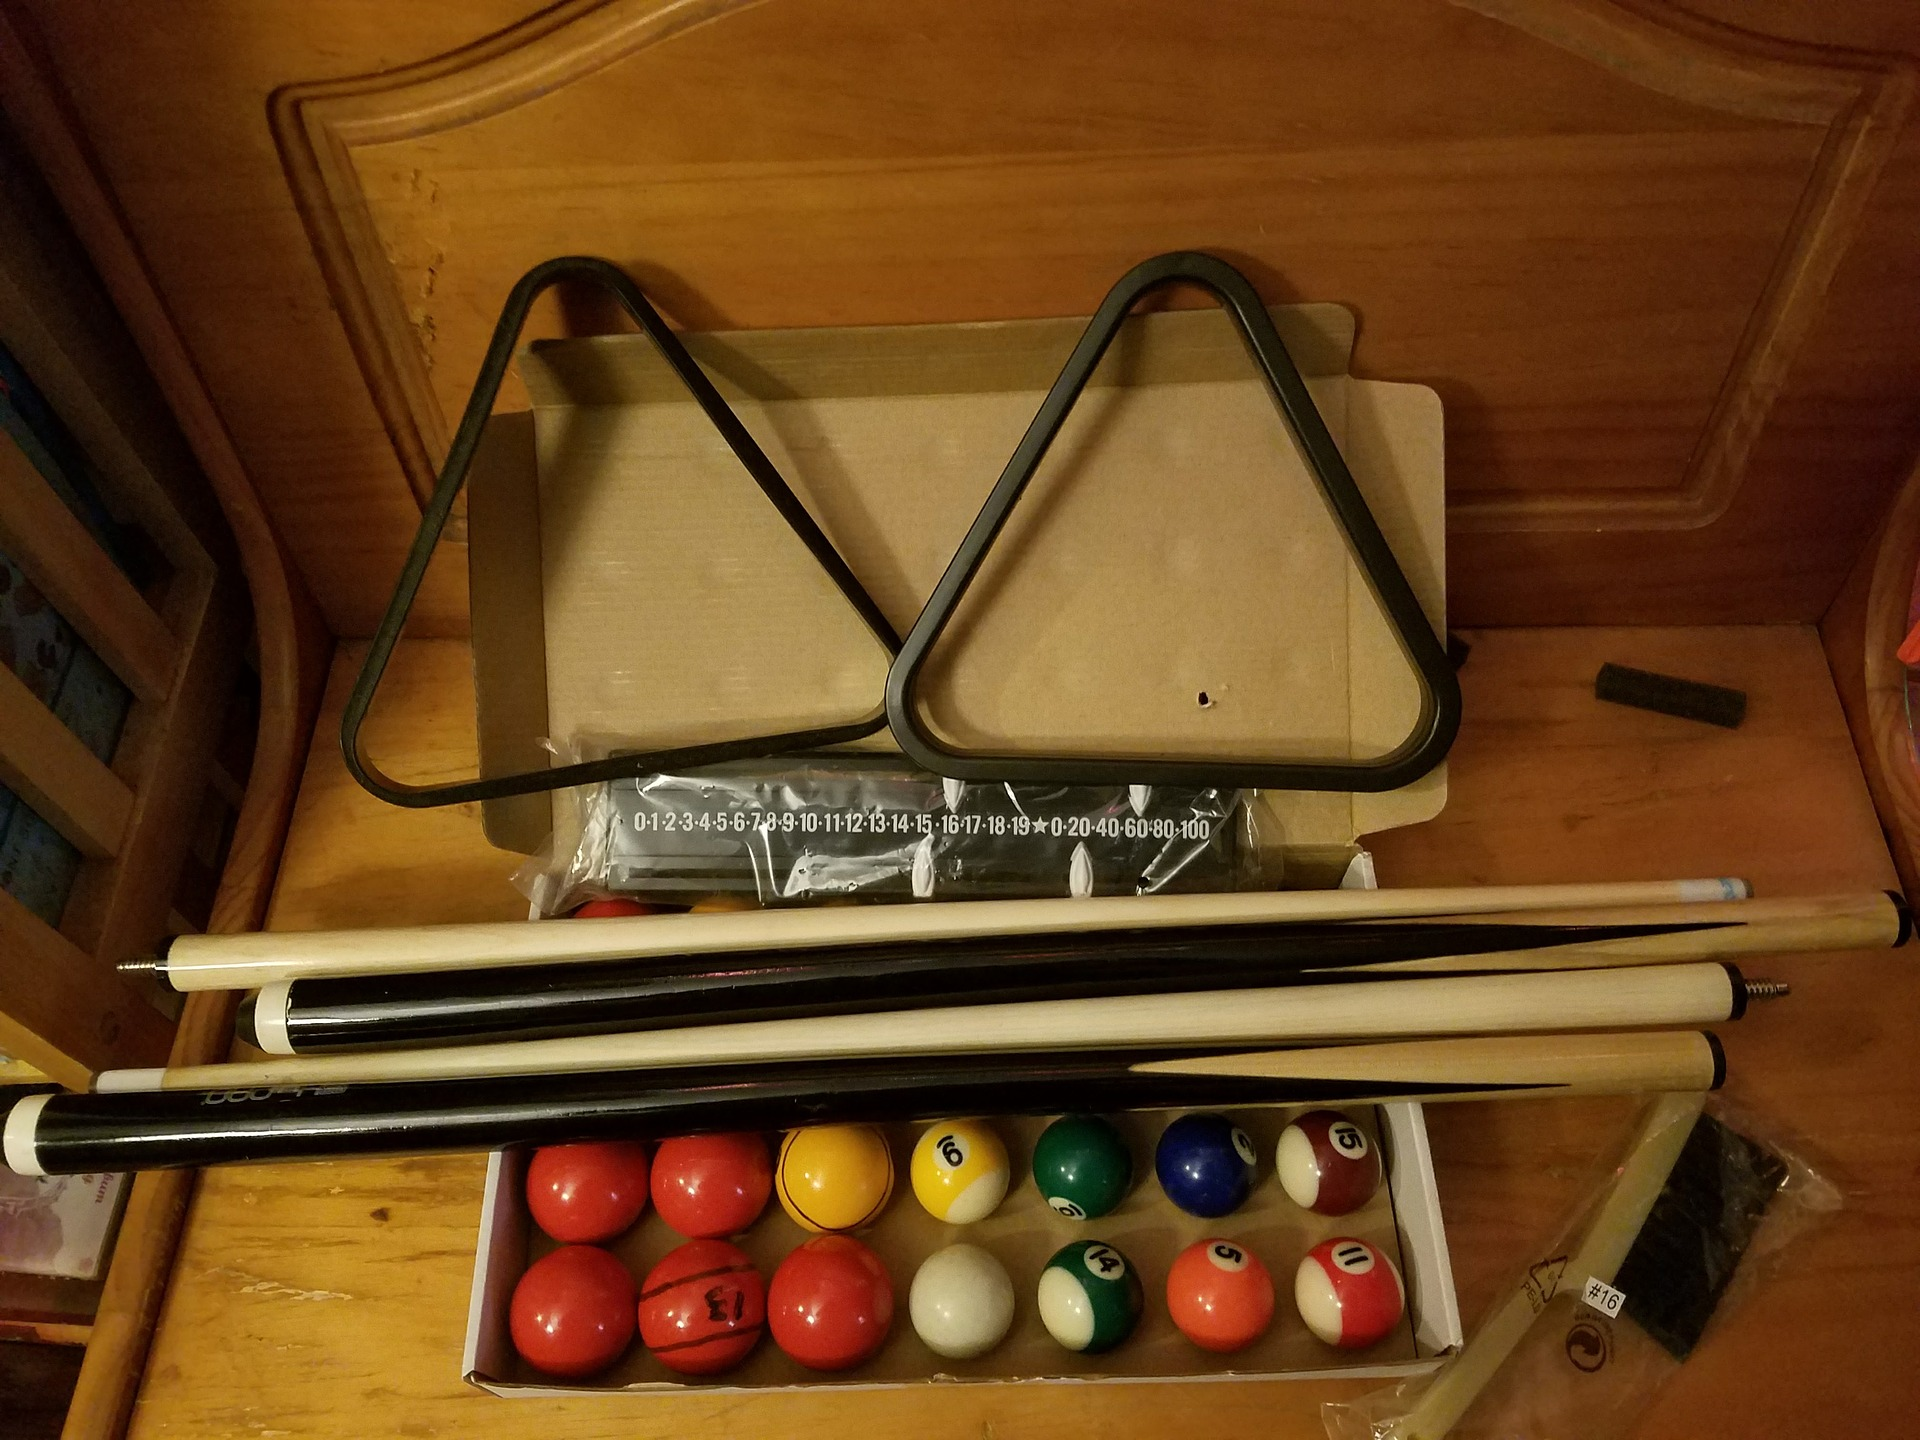 Pool cue and set out of a cue case